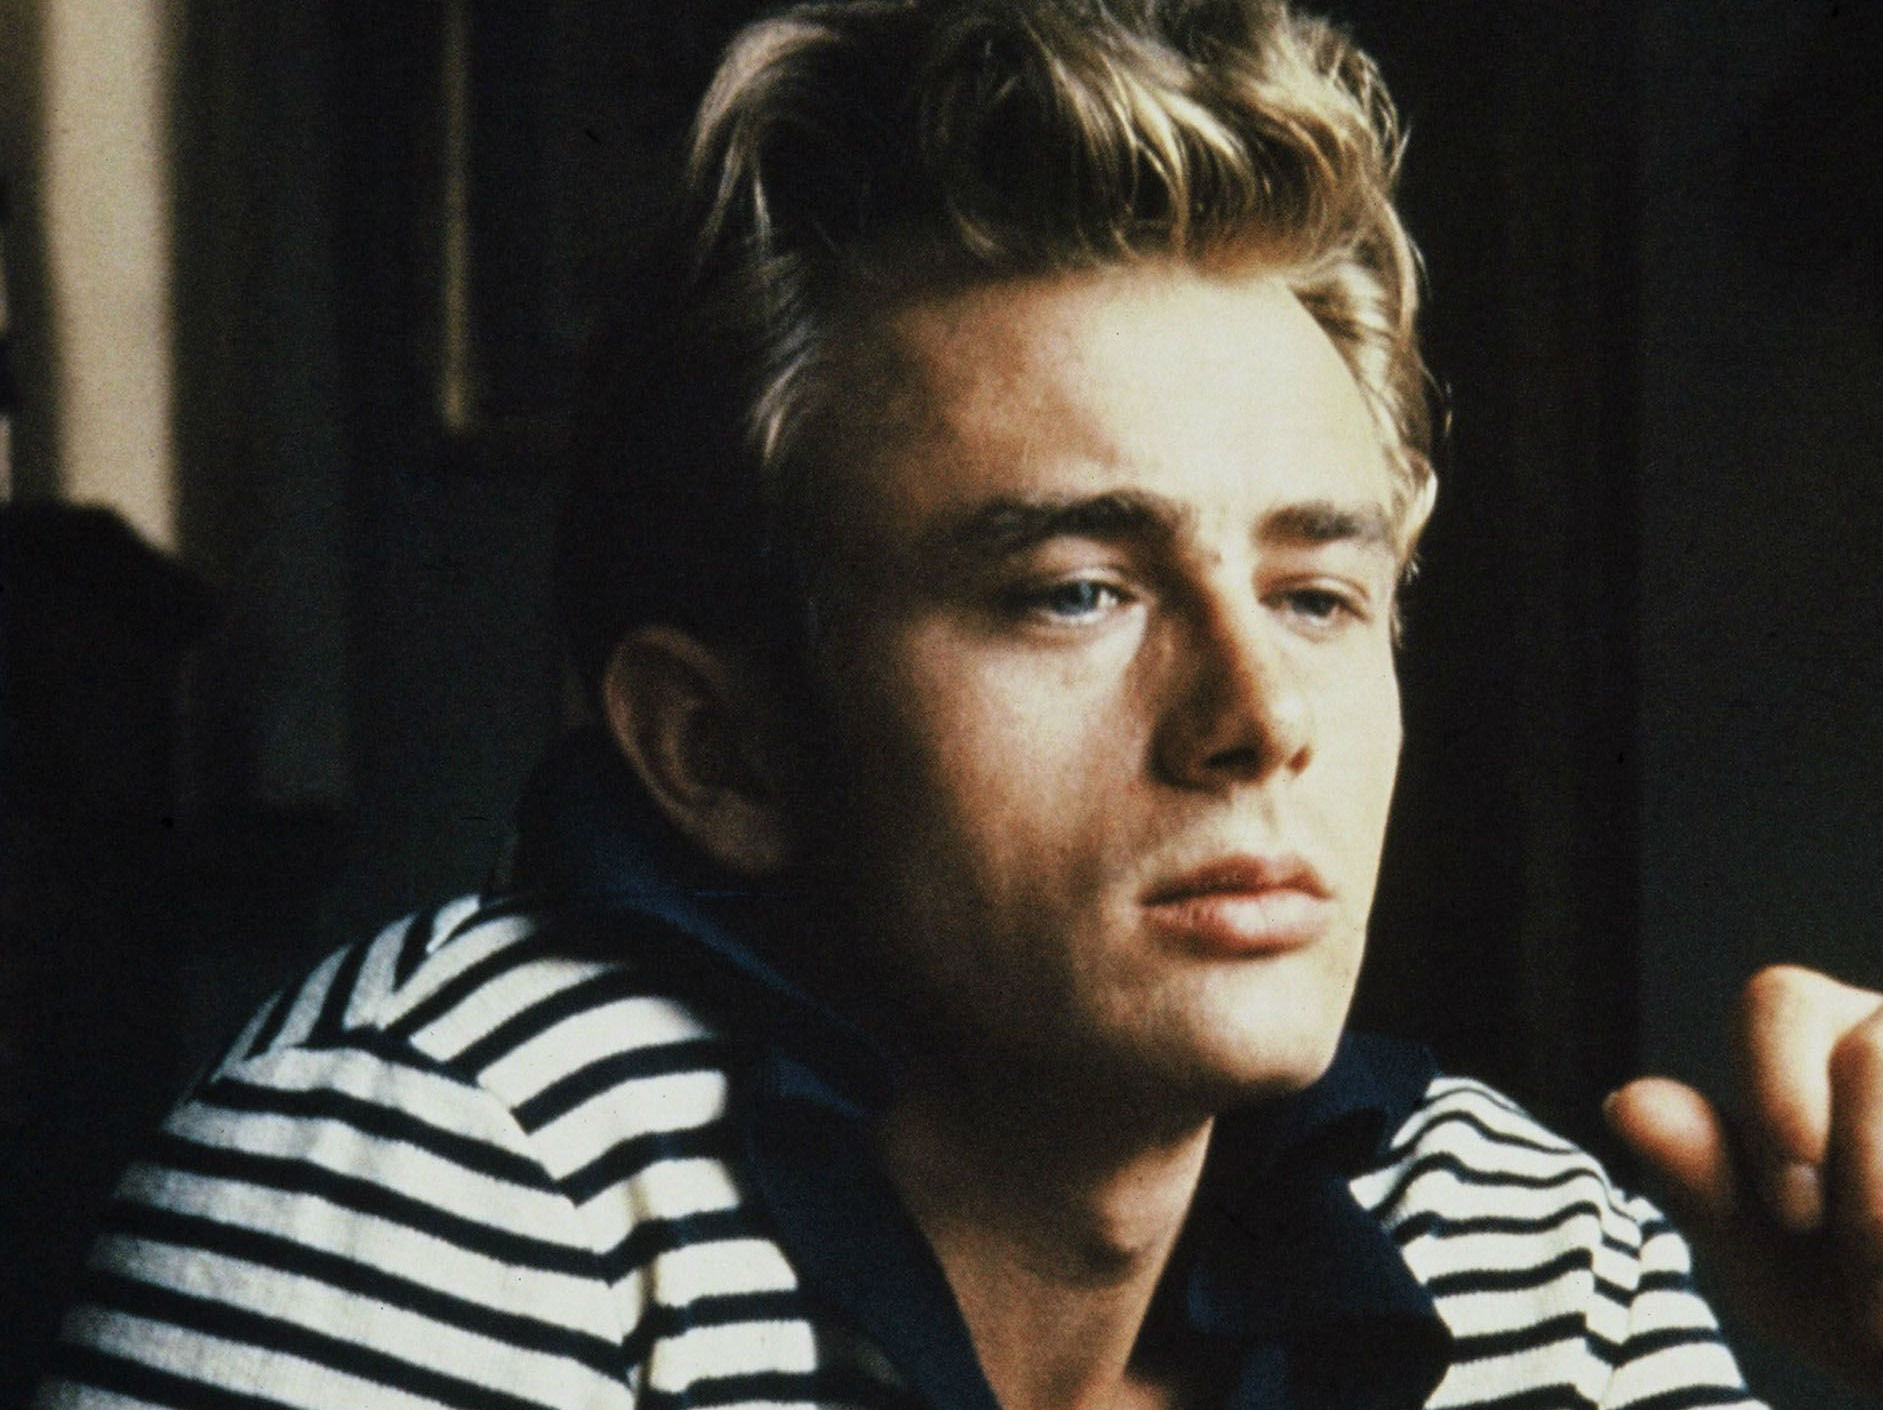 JAMES DEAN actor men male ry wallpaper | 1883x1410 ...